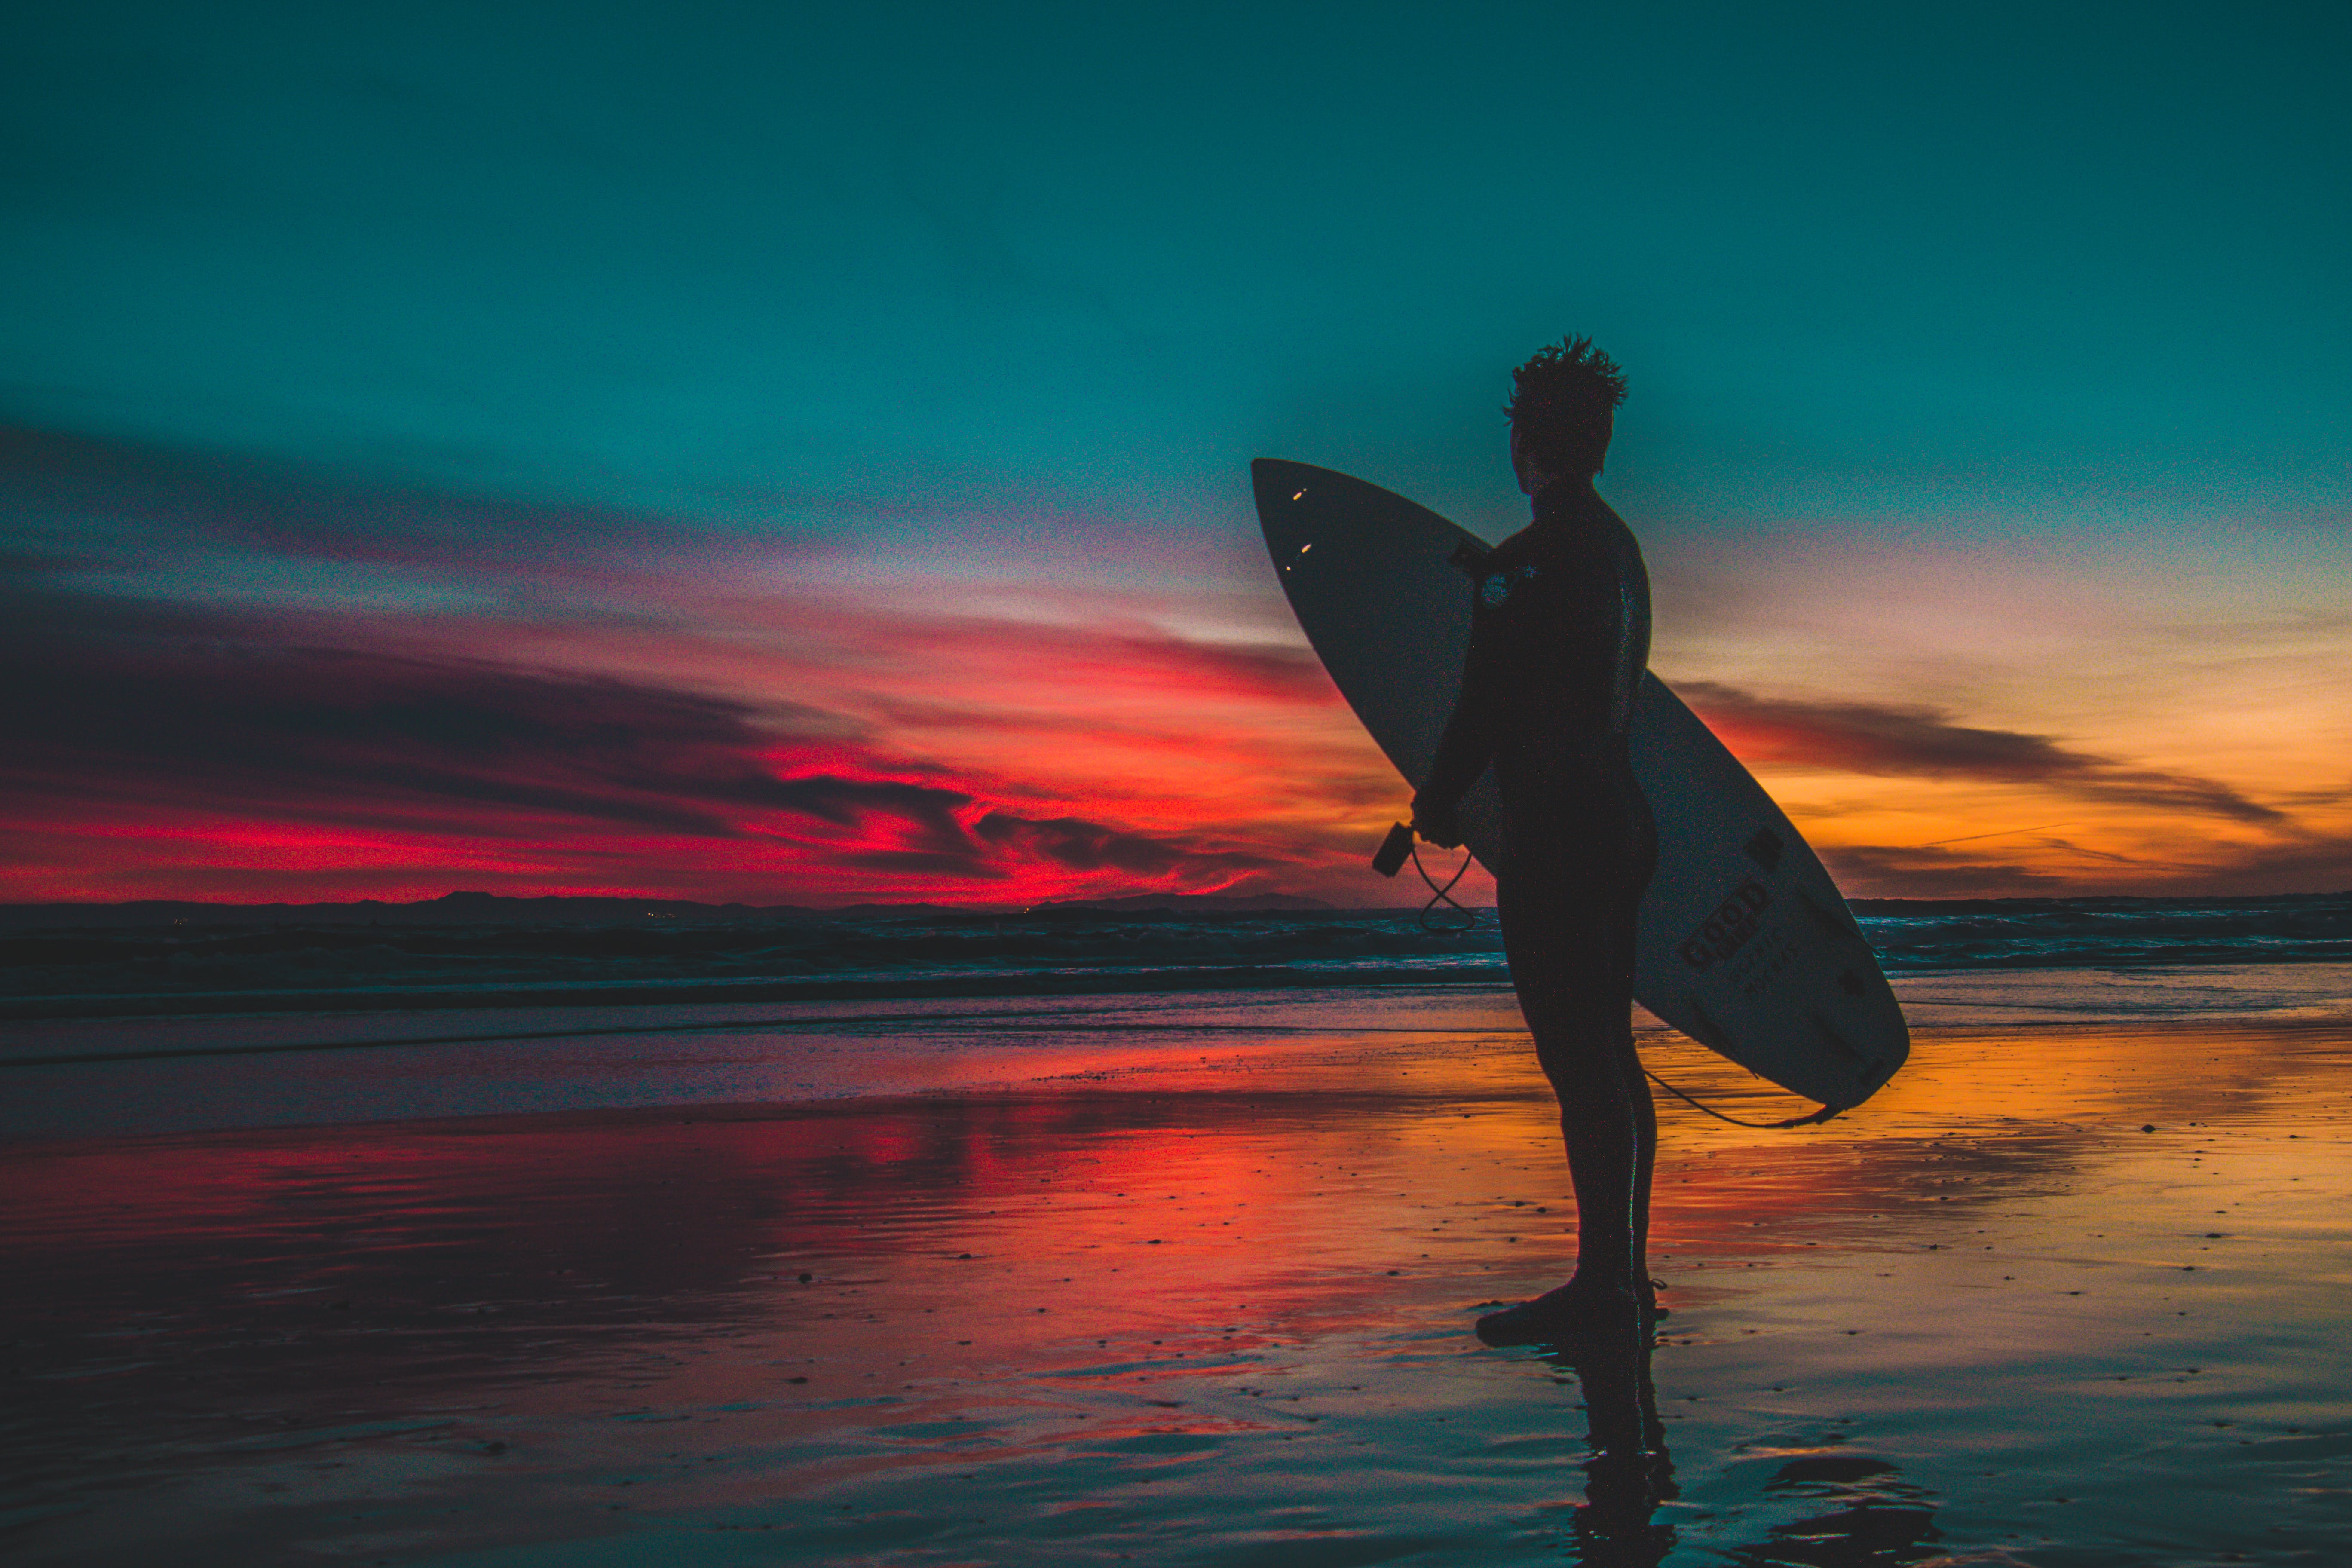 Silhouette of Man in Wet Suit Holding White Surfboard While Standing on Beach during Golden Hour